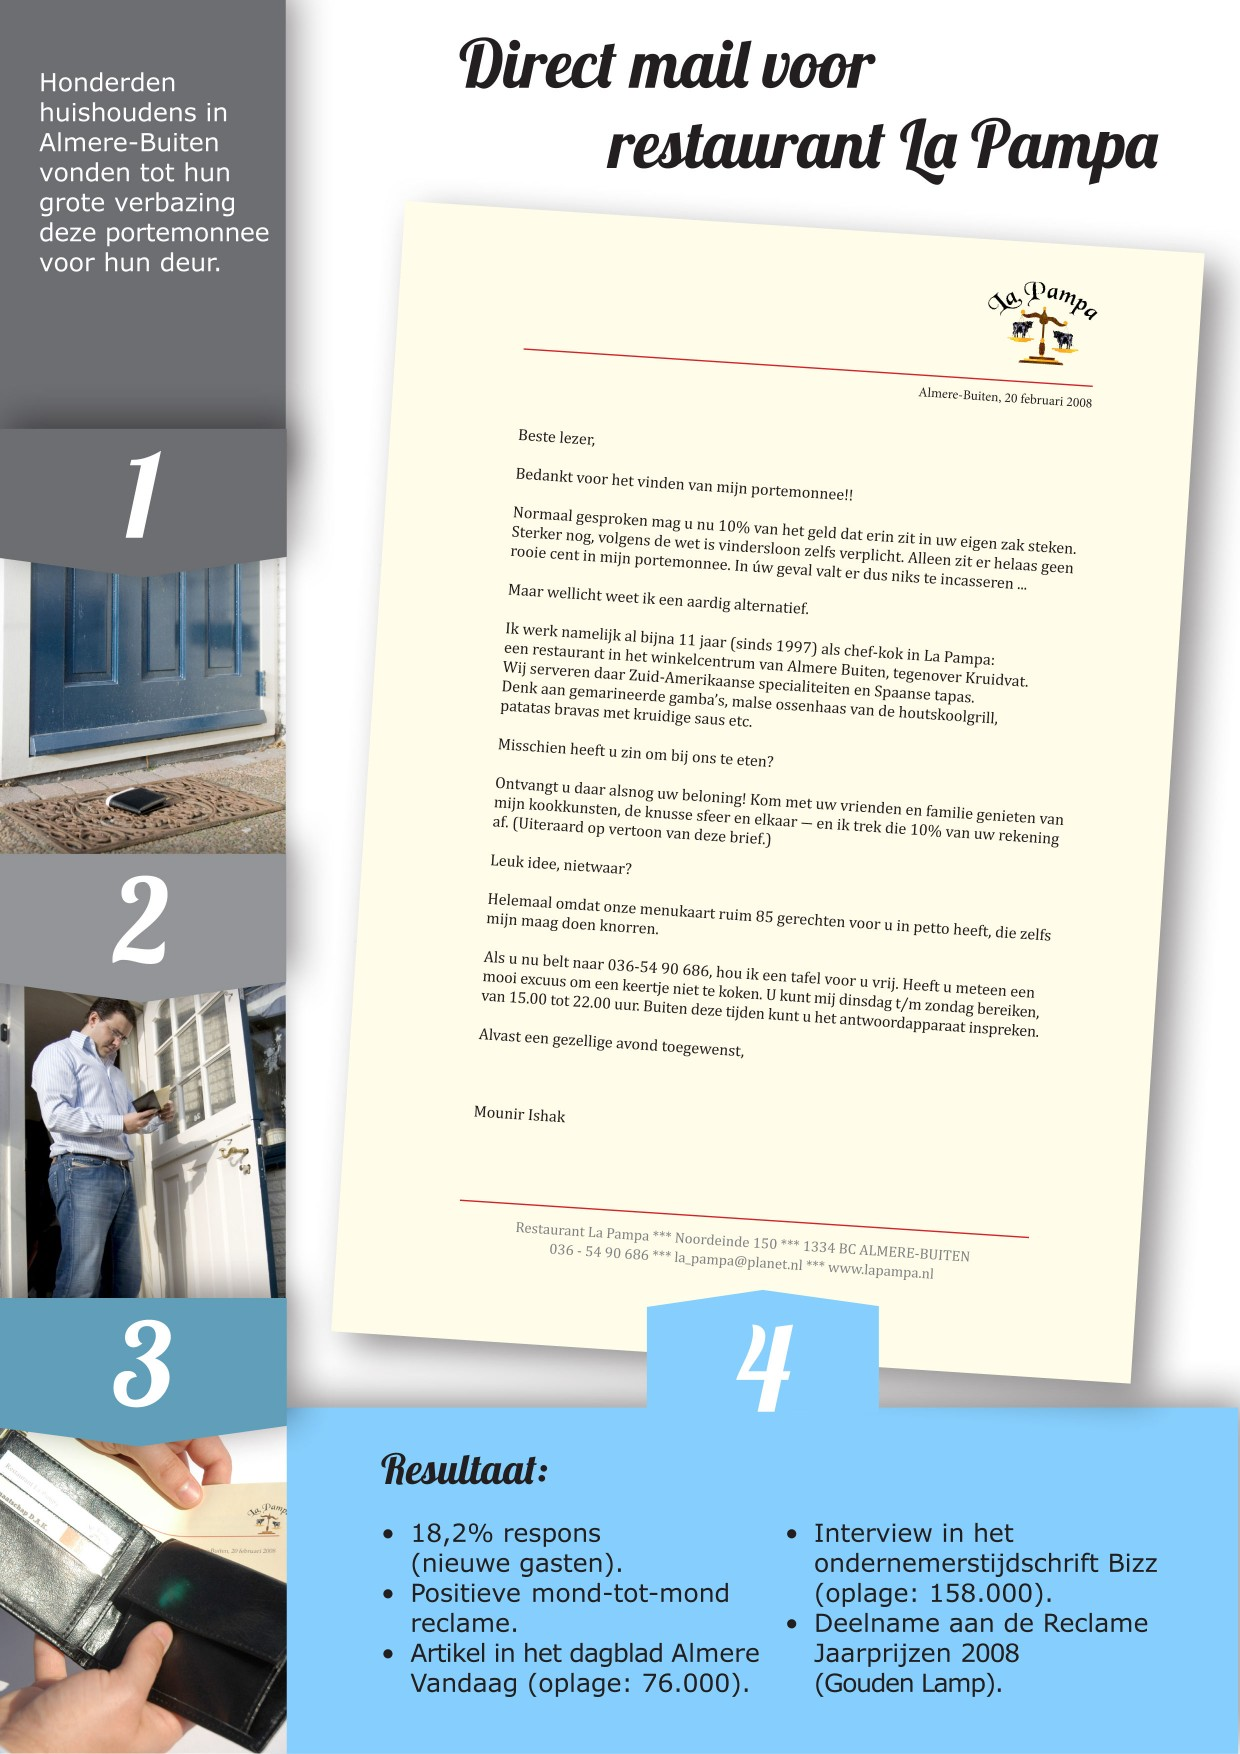 Voorbeeld direct mail (La Pampa)